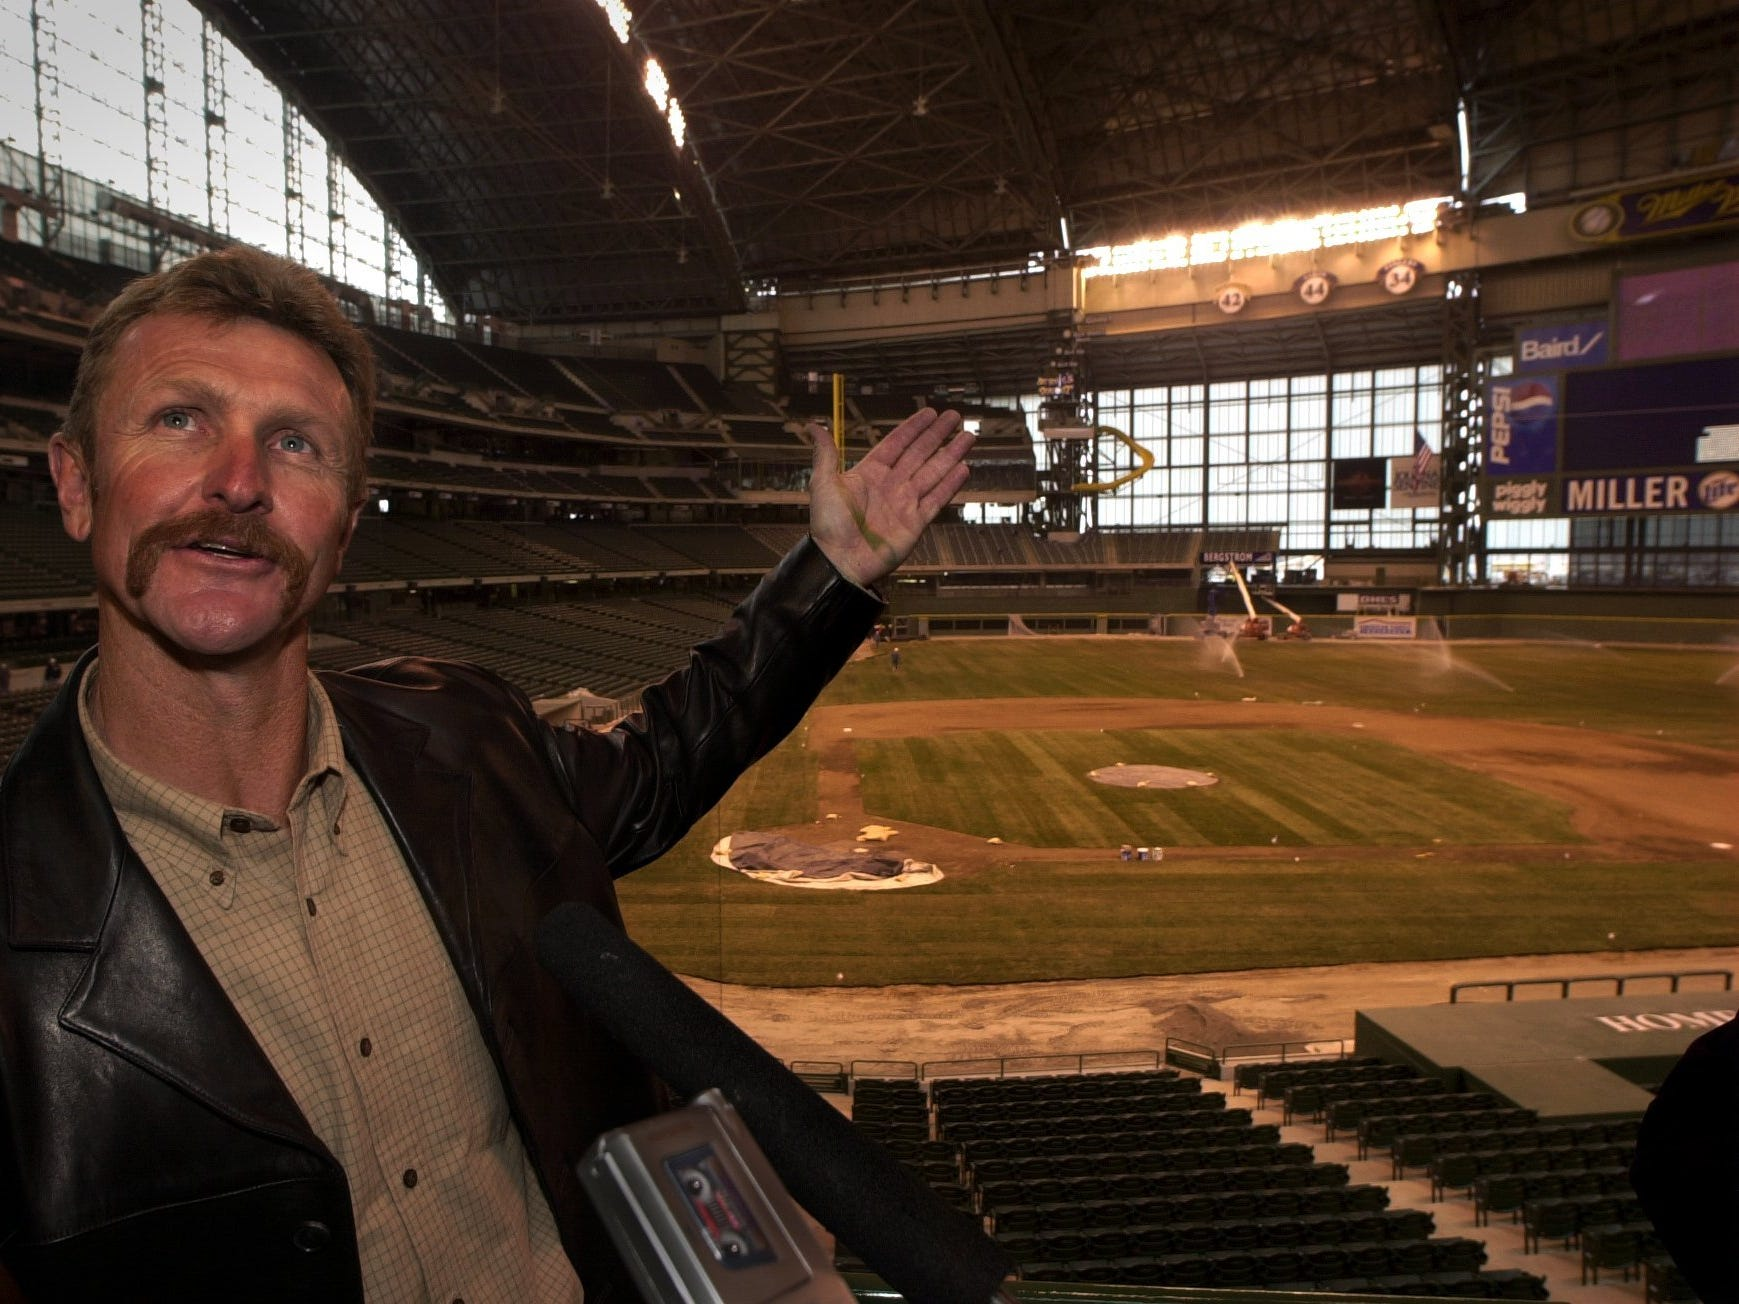 Wearing a stripe of green paint on his hand from touching a freshly painted handrail, former Milwaukee Brewers player Robin Yount admires the inside of Miller Park.